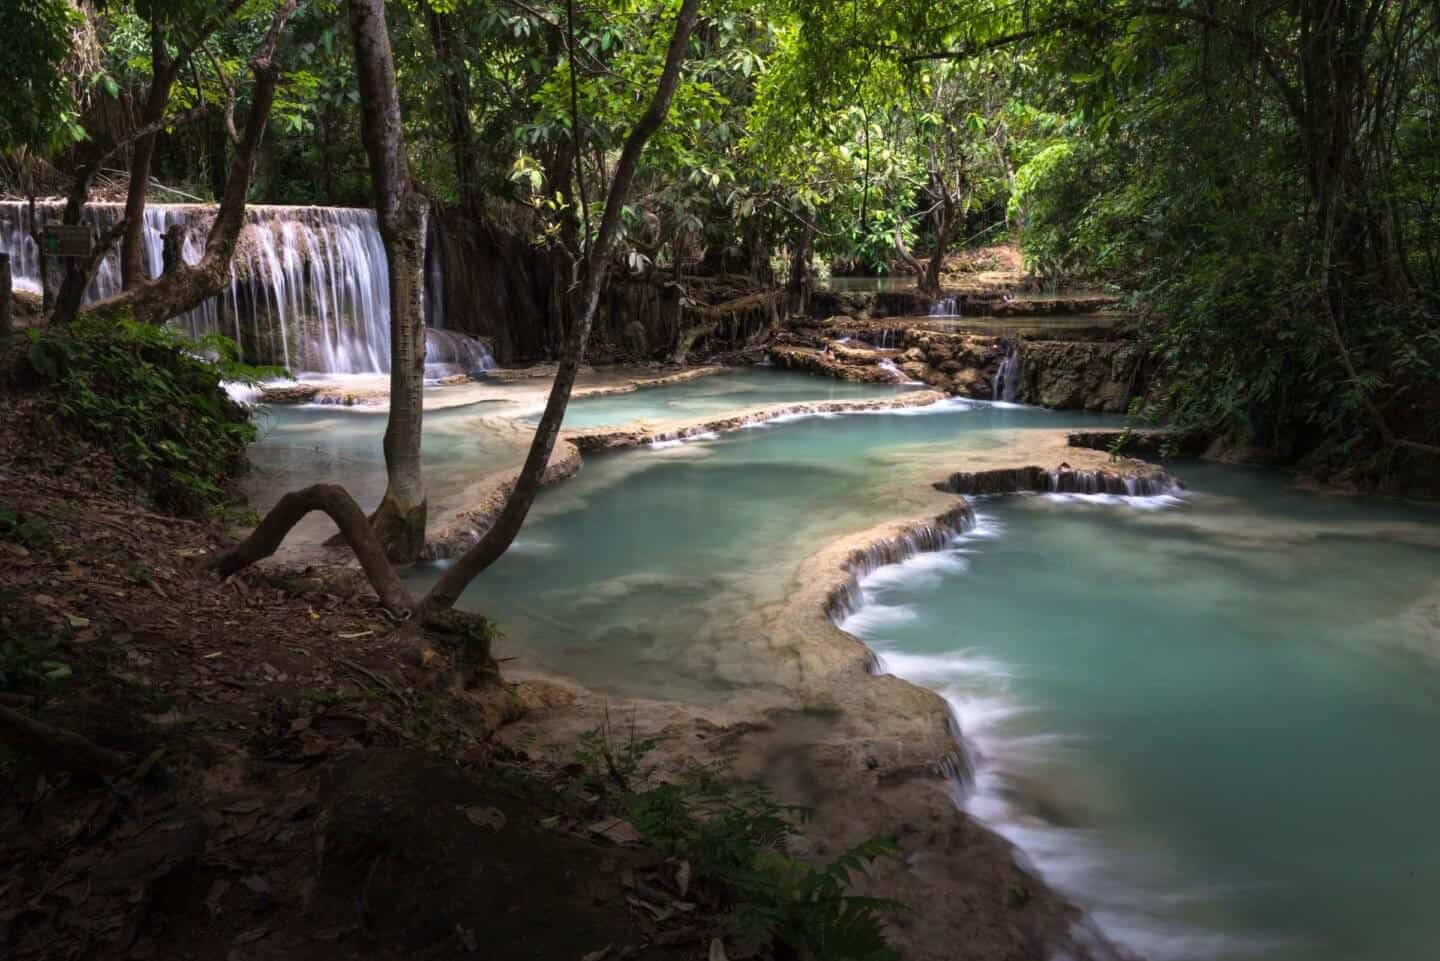 The lower tiers of Kuang Si Falls resembles the Garden of Eden in morning light.